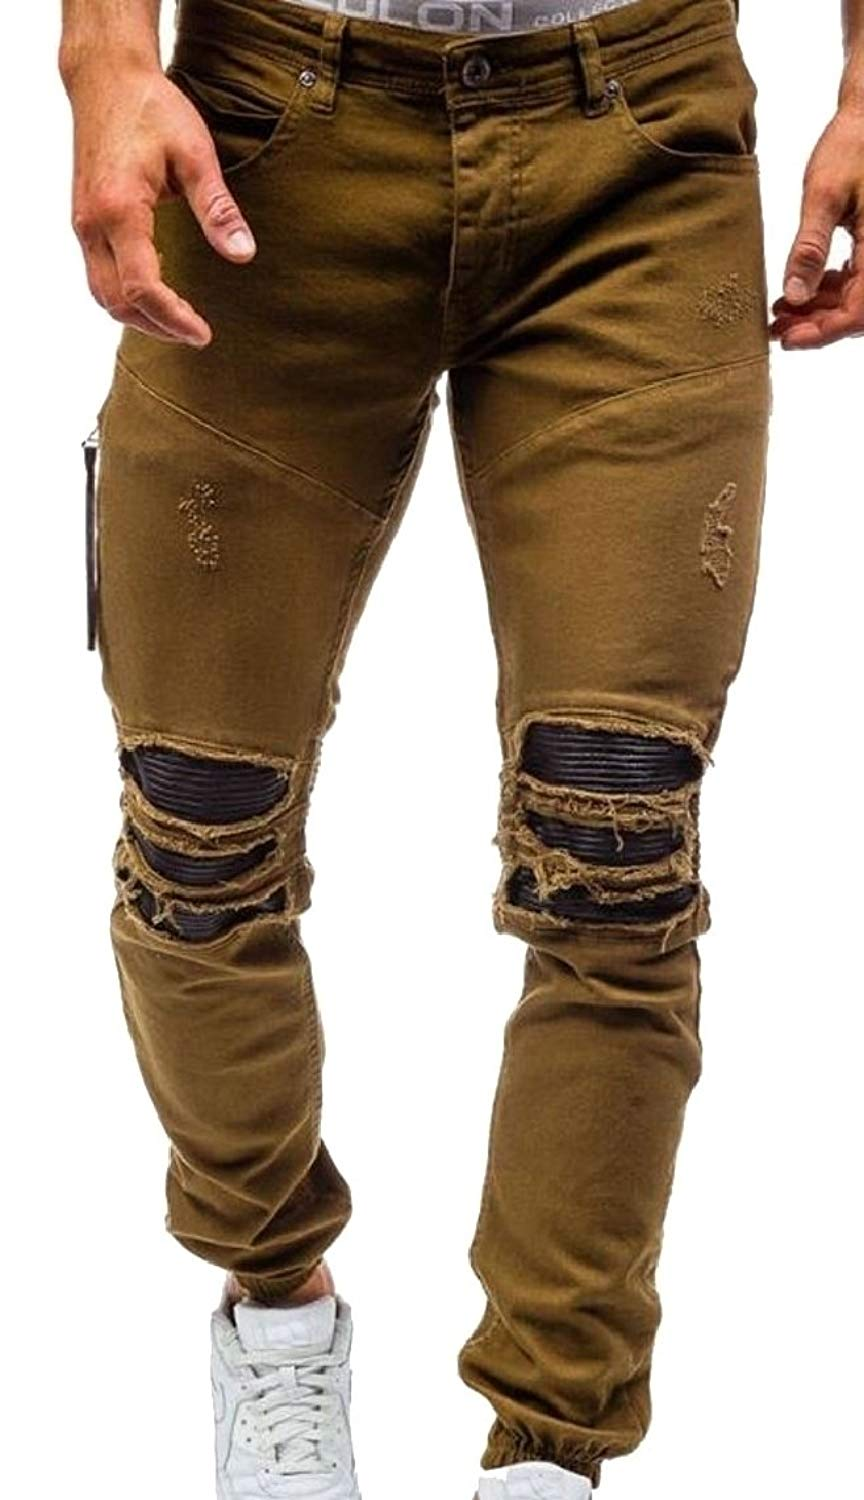 5eec16f8617 Get Quotations · ouxiuli Men's Vintage Ripped Jeans Vintage Fitted Stretchy  Tapered Leg Destroyed Jeans